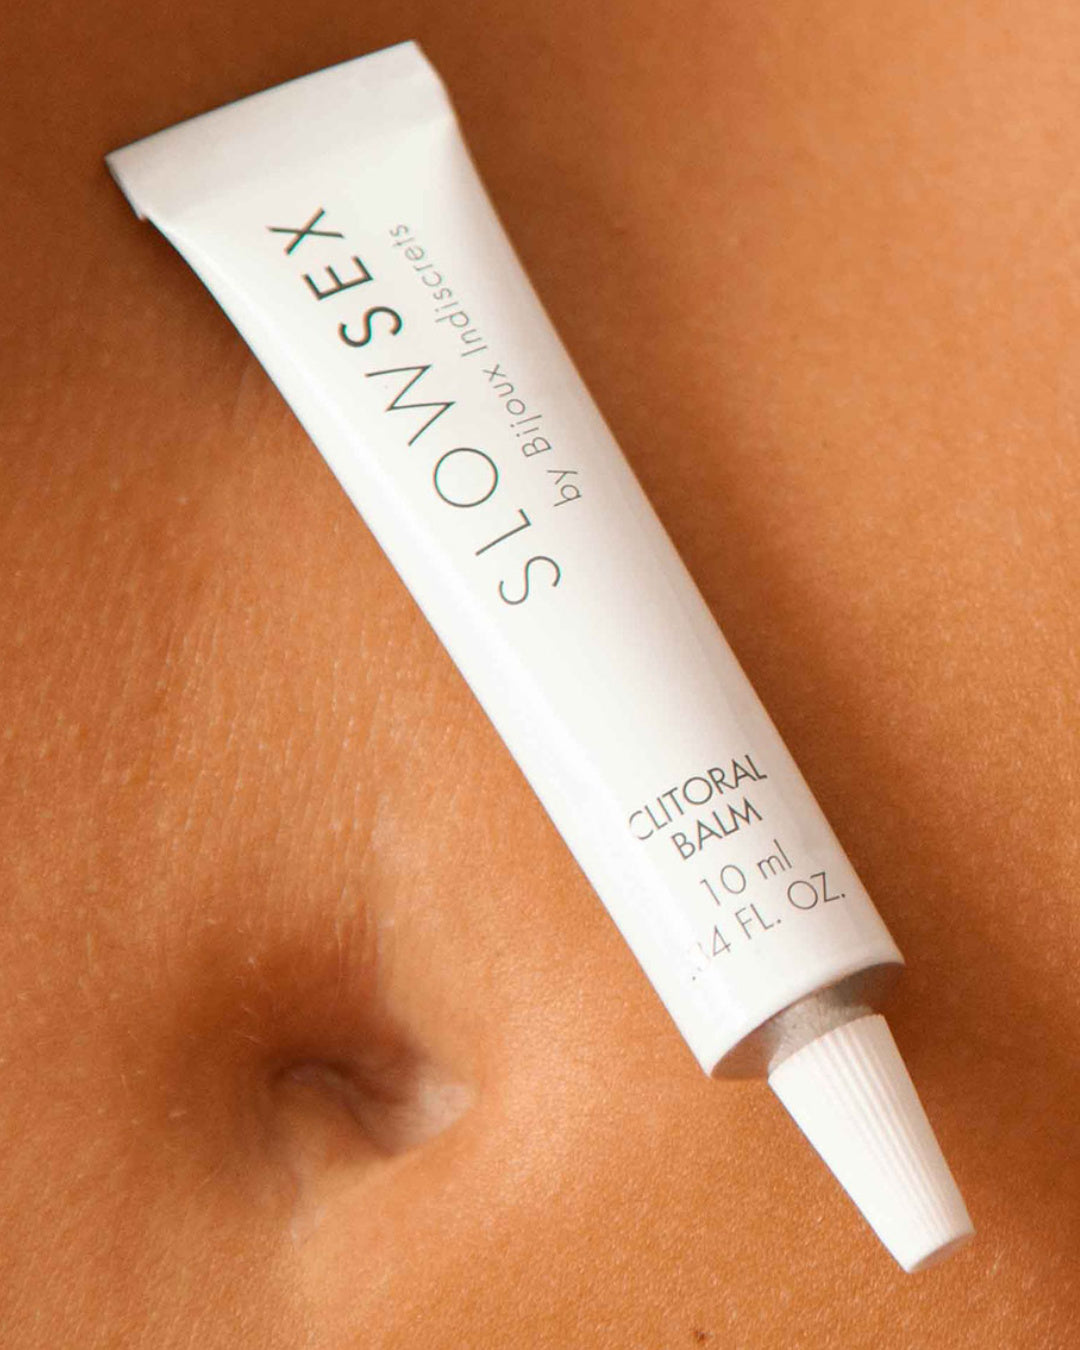 Bijoux Indiscrets Slow Sex Clitoral Balm tube on mode's stomach